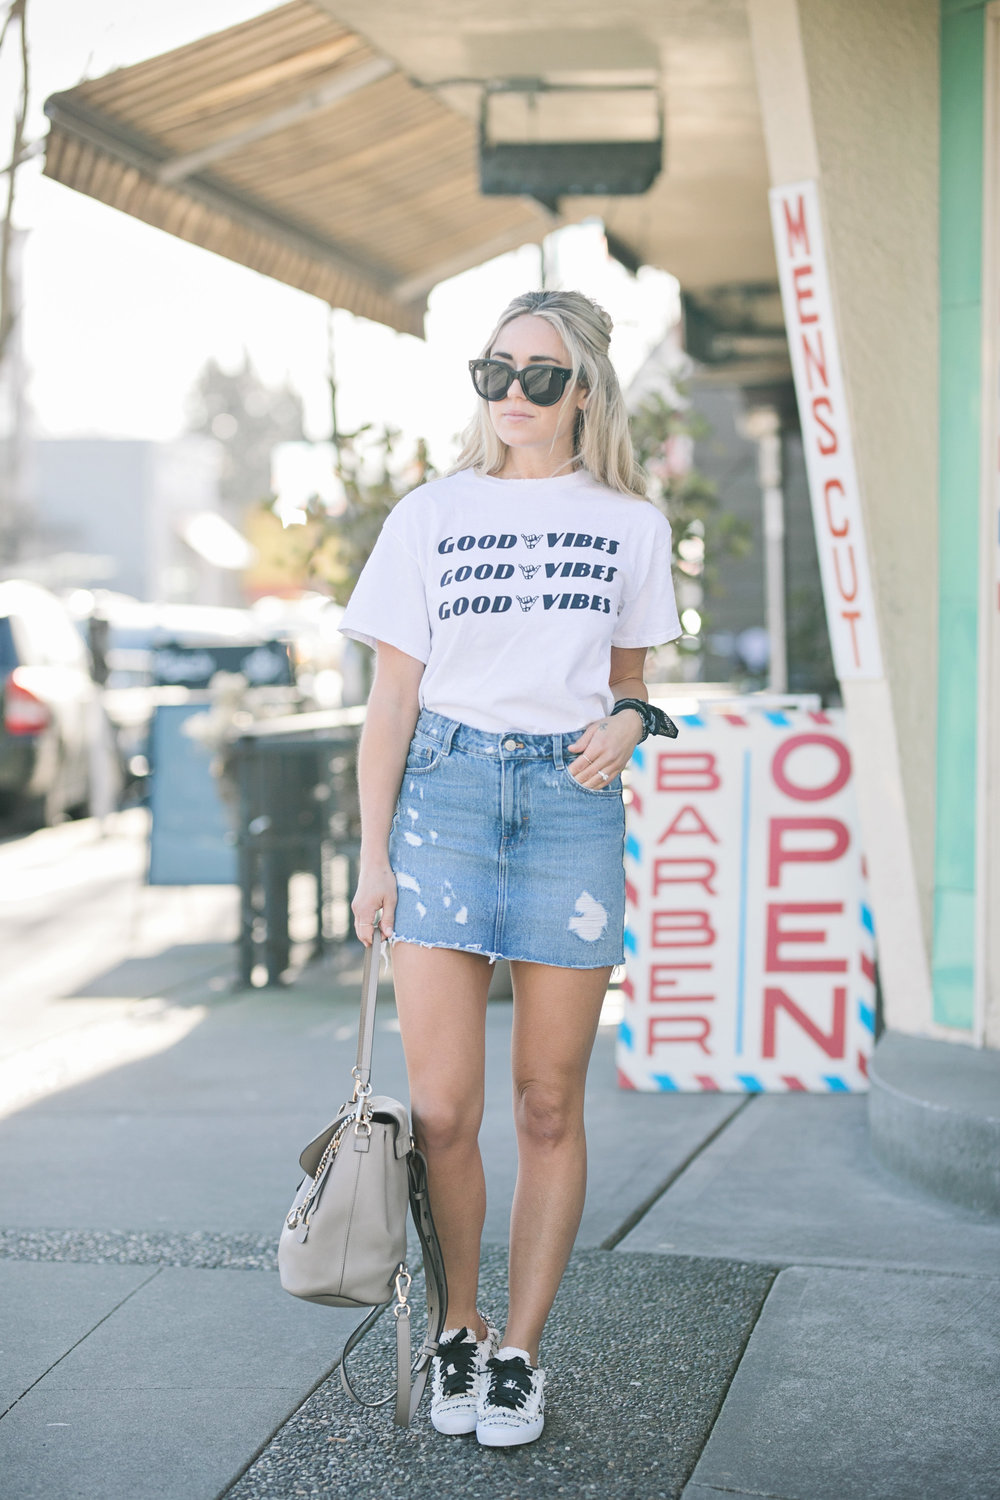 Photography by Allison Kuhl Brandy & Melville Top, Levi's Skirt, Jennifer Zeuner Earrings, Zara Shoes, Chloé Bag